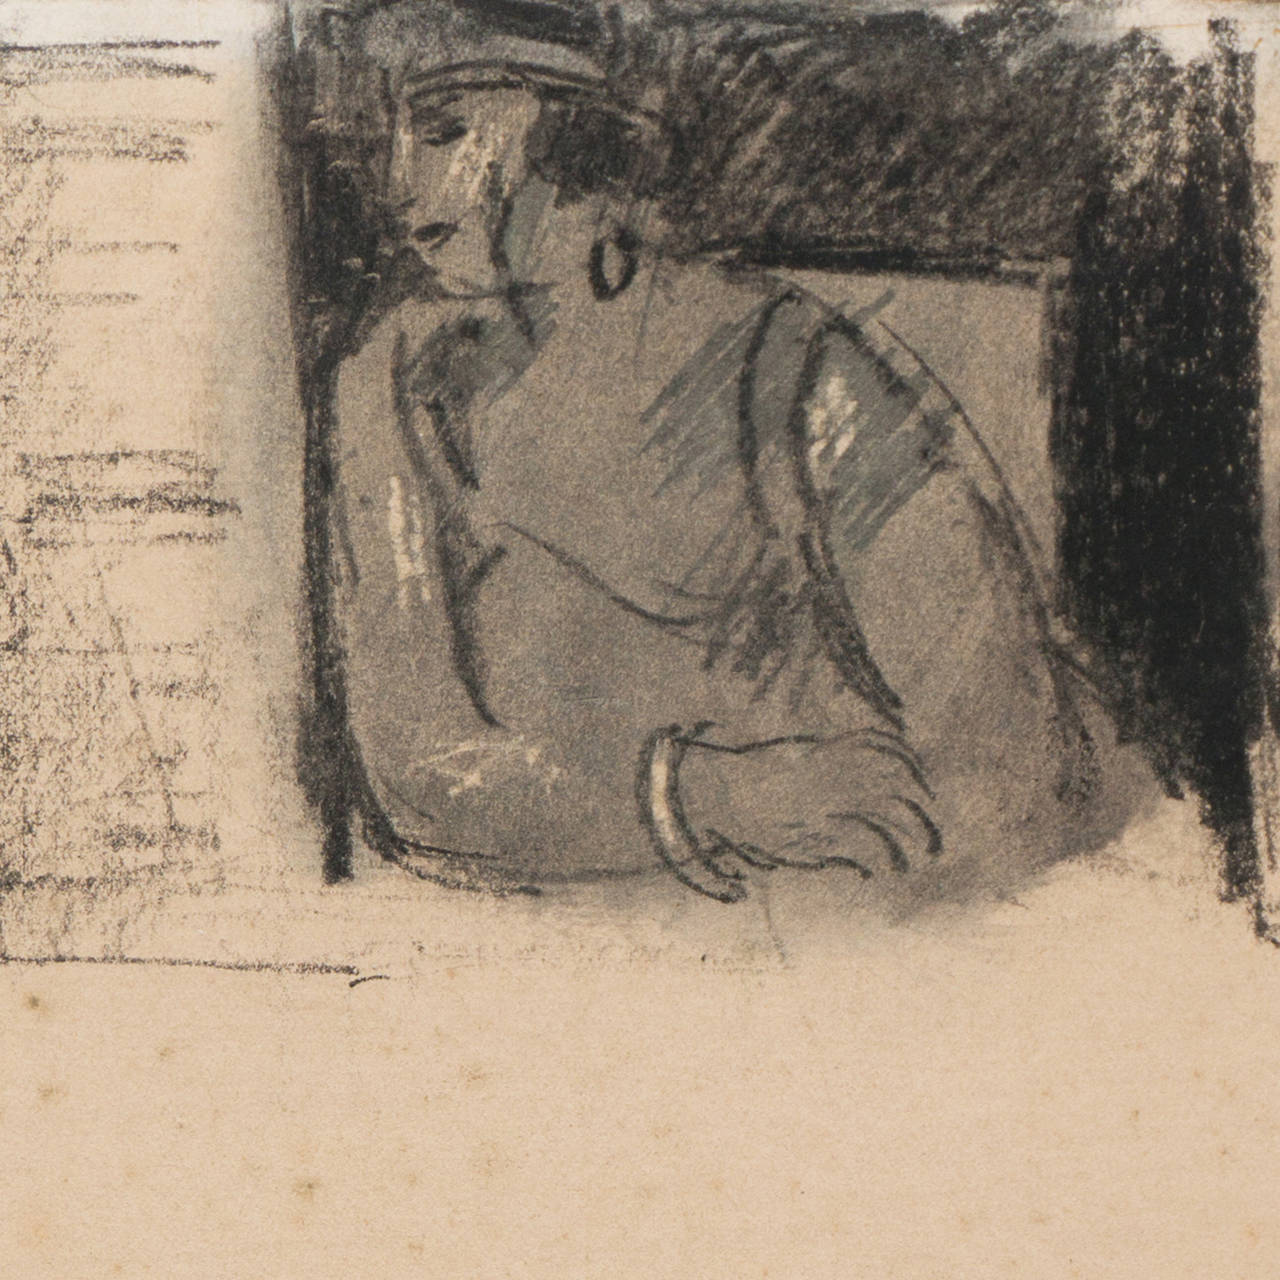 'Entente', Salon d'Automne, French Post-Impressionist Equestrian Figural Drawing For Sale 4